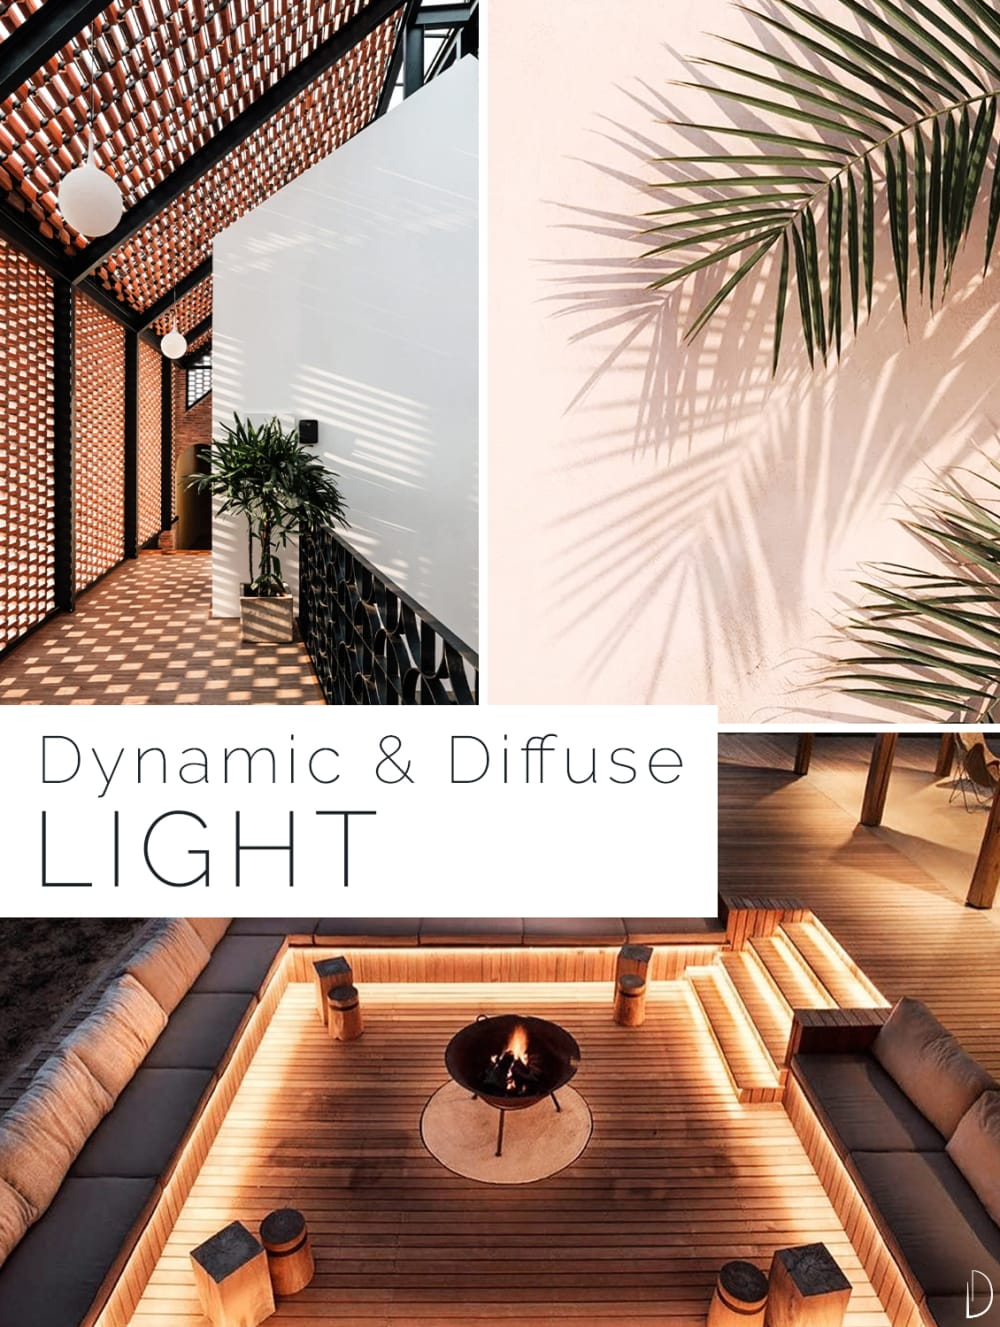 """Biophilic design moodboard showing examples of dynamic & diffuse lighting. 1. Light drawing a pattern on the floor while filtering through a brick ceiling. 2. A palm leaf reflecting on a wall. 3. A sunk outdoor space with strategically placed accent lighting.<span class=""""sr-only""""> (opened in a new window/tab)</span>"""